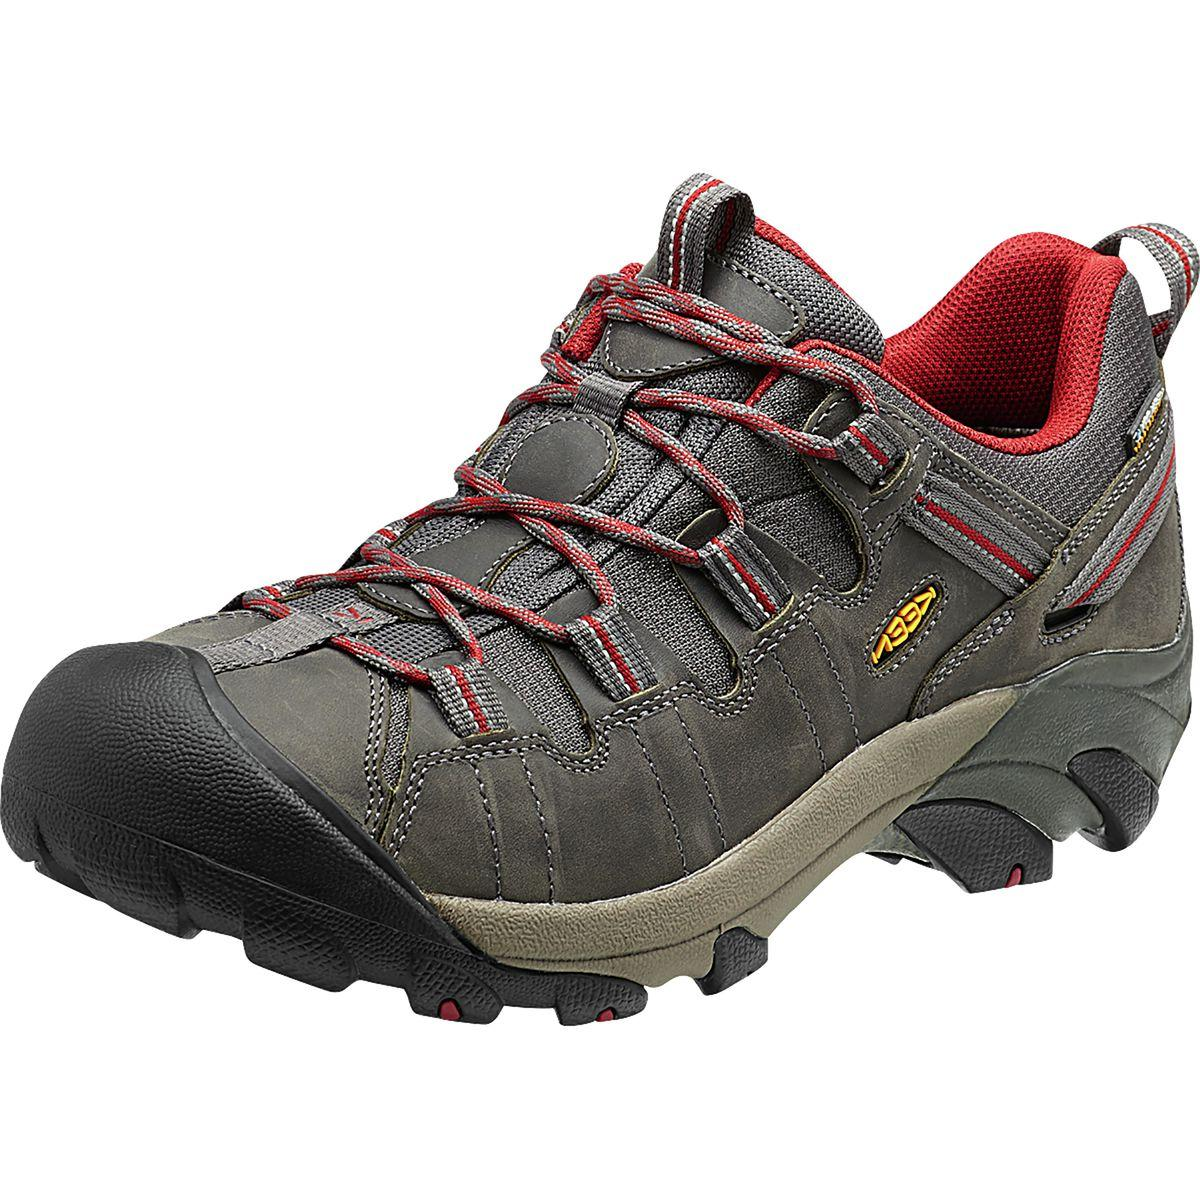 KEEN Targhee ll Hiking Shoe - Men's Gargoyle/Midnight Navy,